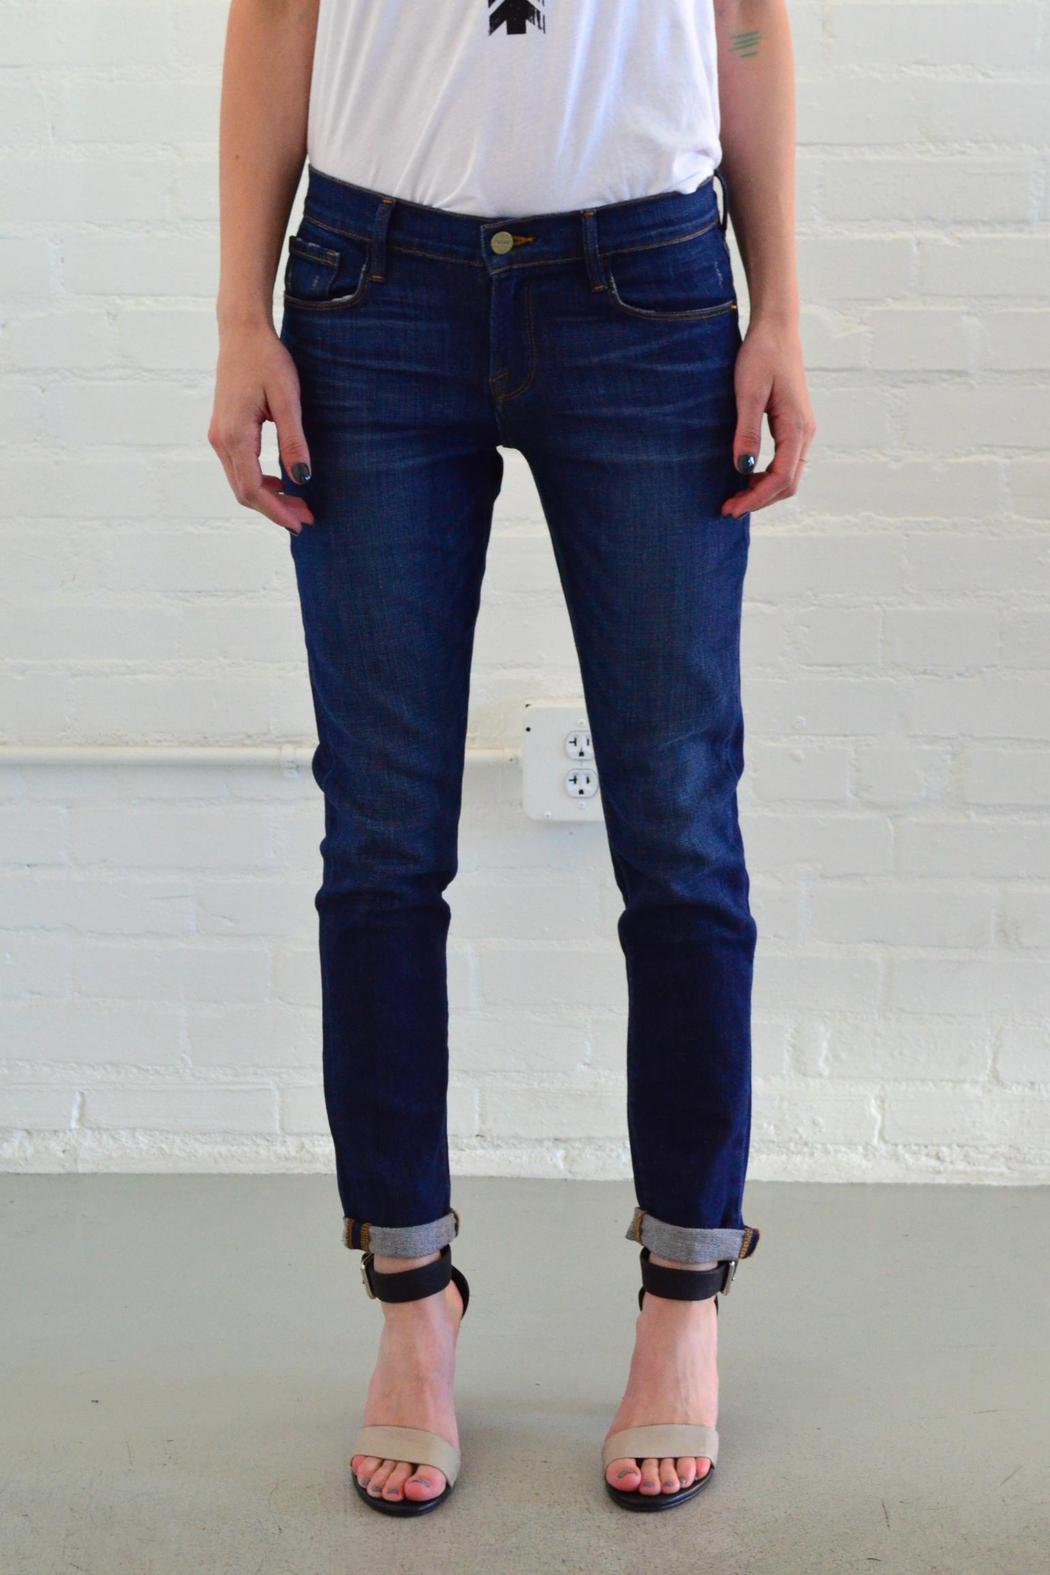 Fancy Frame Denim Le Garcon | Lovable Frame Denim Ripped Jeans Style